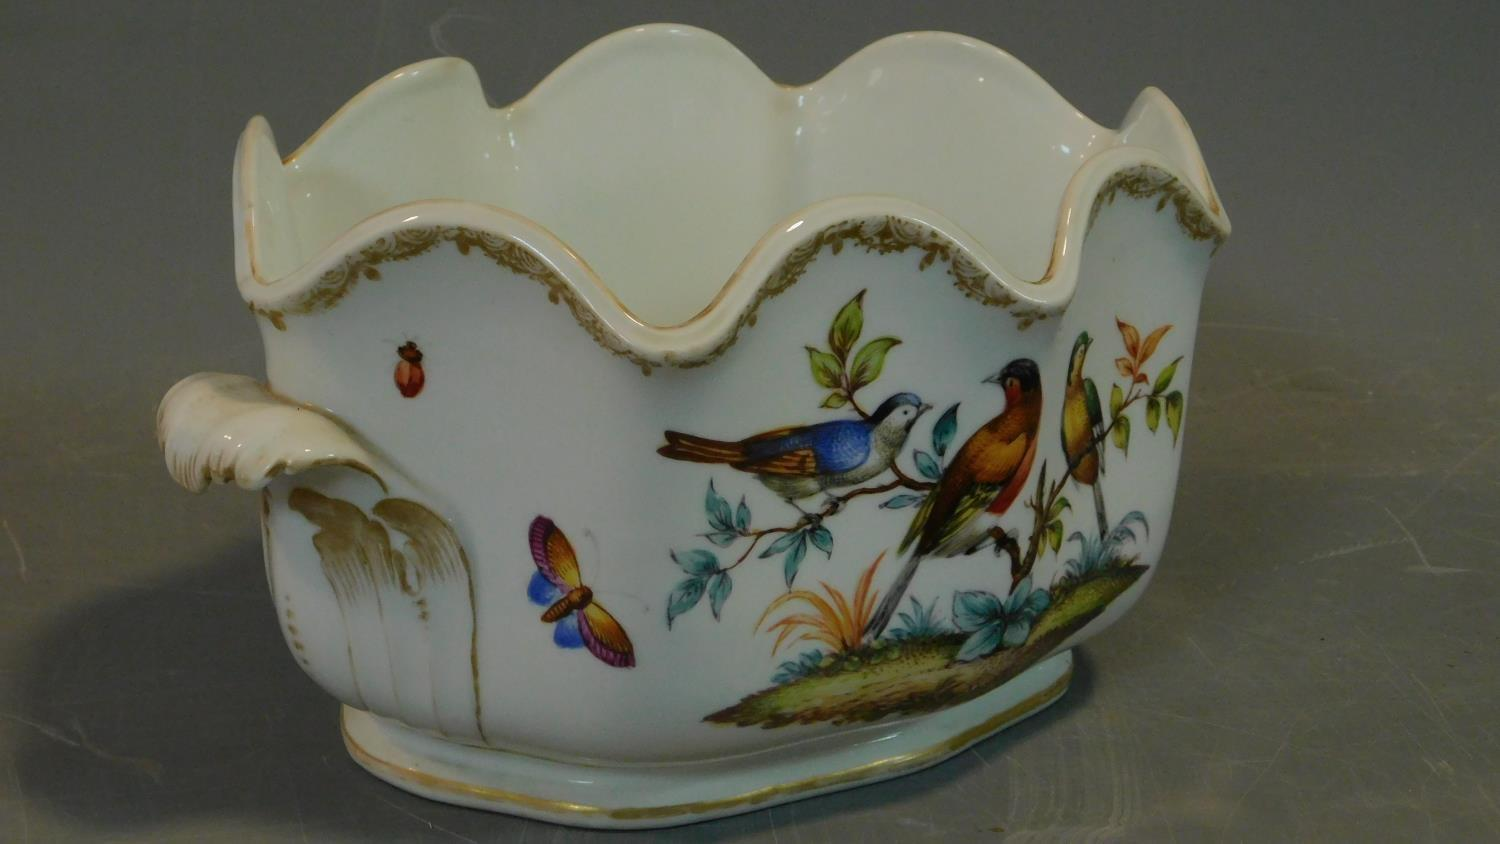 A Meissen style porcelain vase, hand painted with bird decoration. 14x18cm - Image 2 of 9